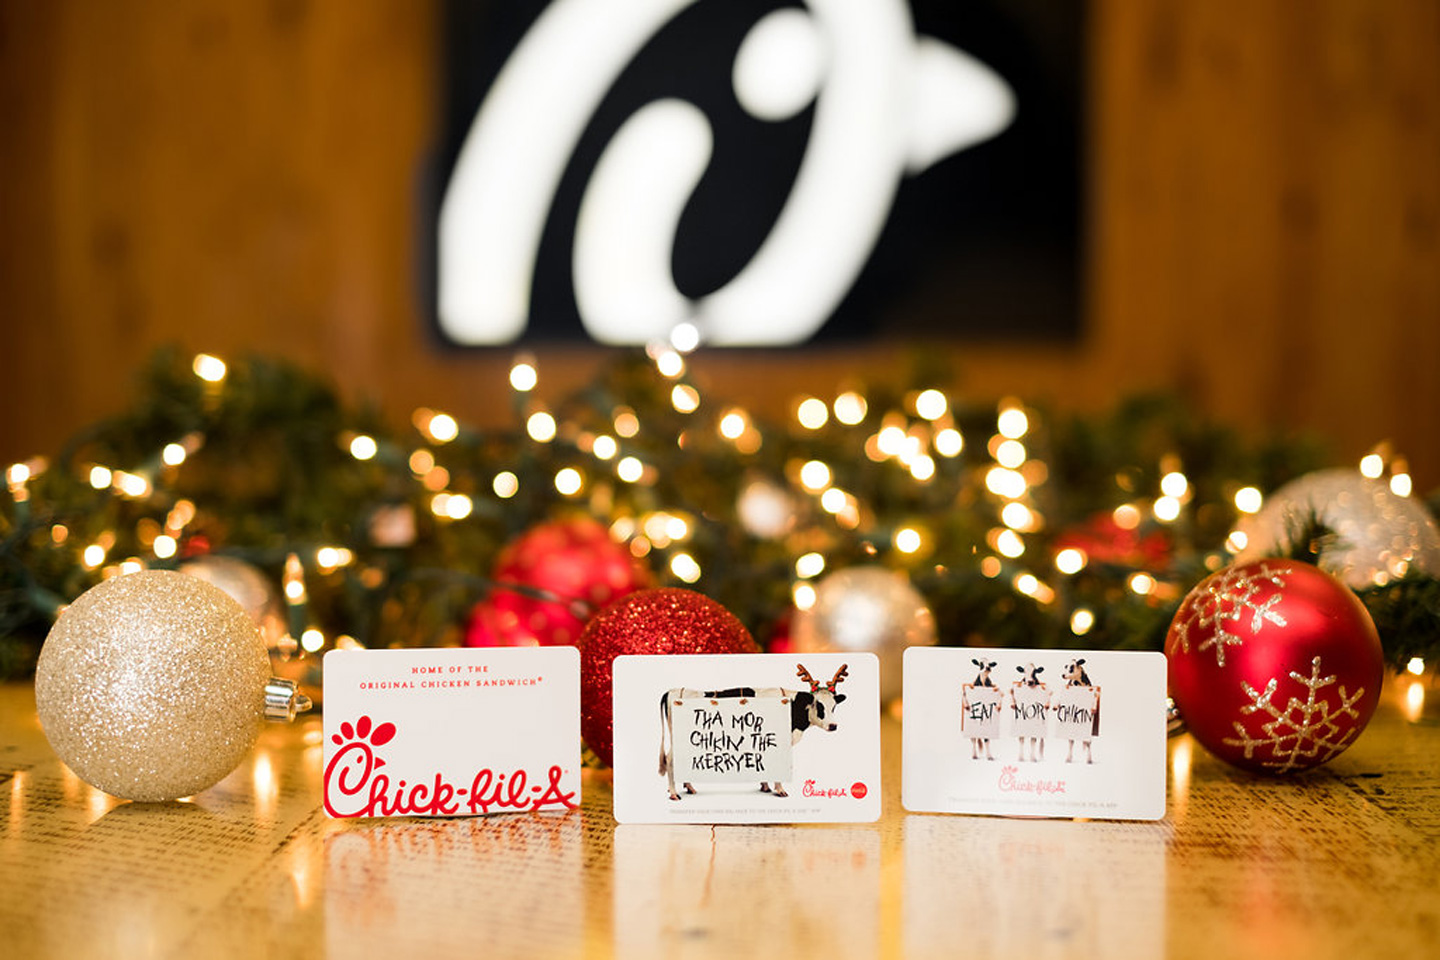 3 reasons to give a Chick-fil-A gift card as a holiday